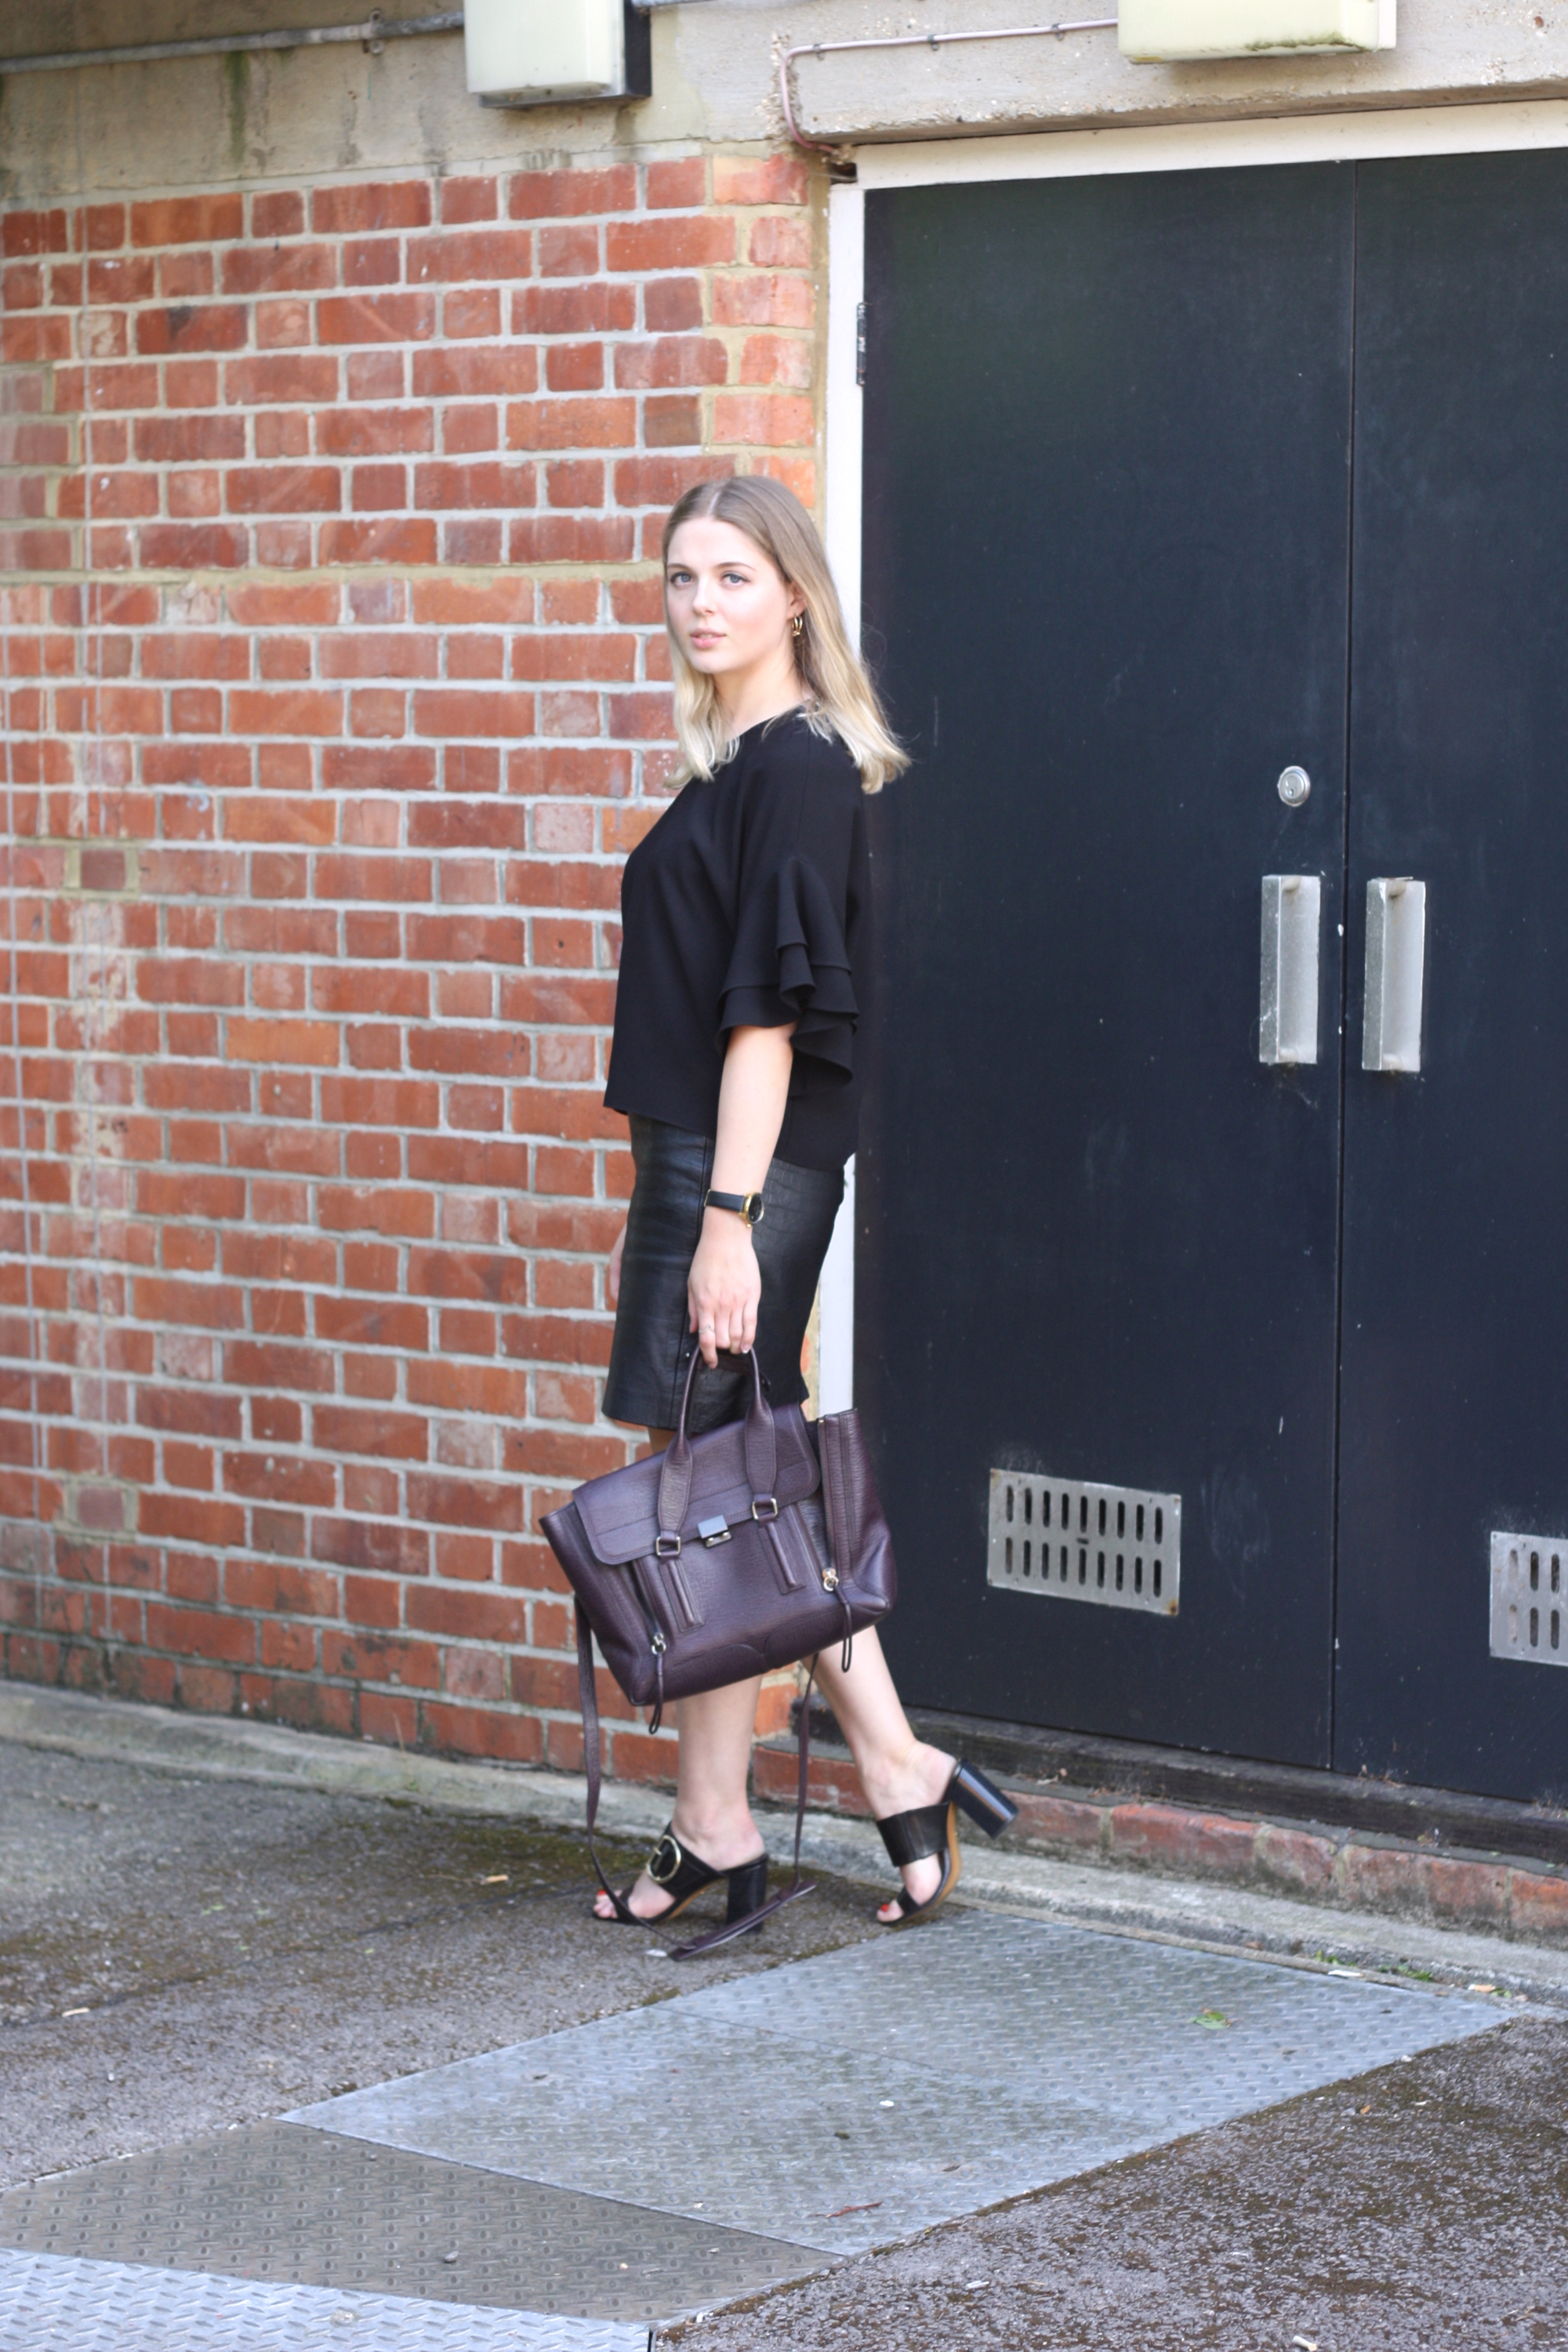 3.1 Phillip Lim Pashli medium bag, Whistles Fairhope buckle sandals and Zara black frilled top